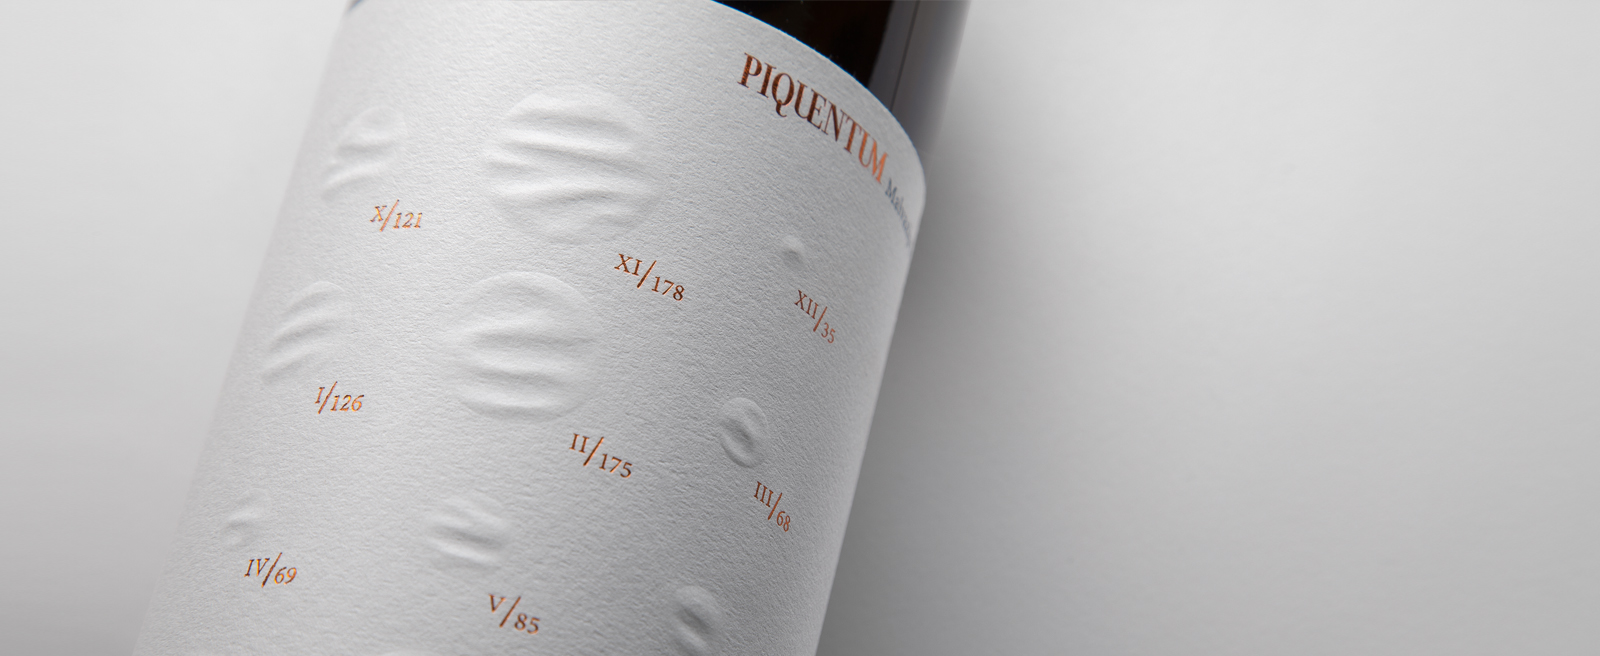 Piquentum St.Vital, nature speaks out through label